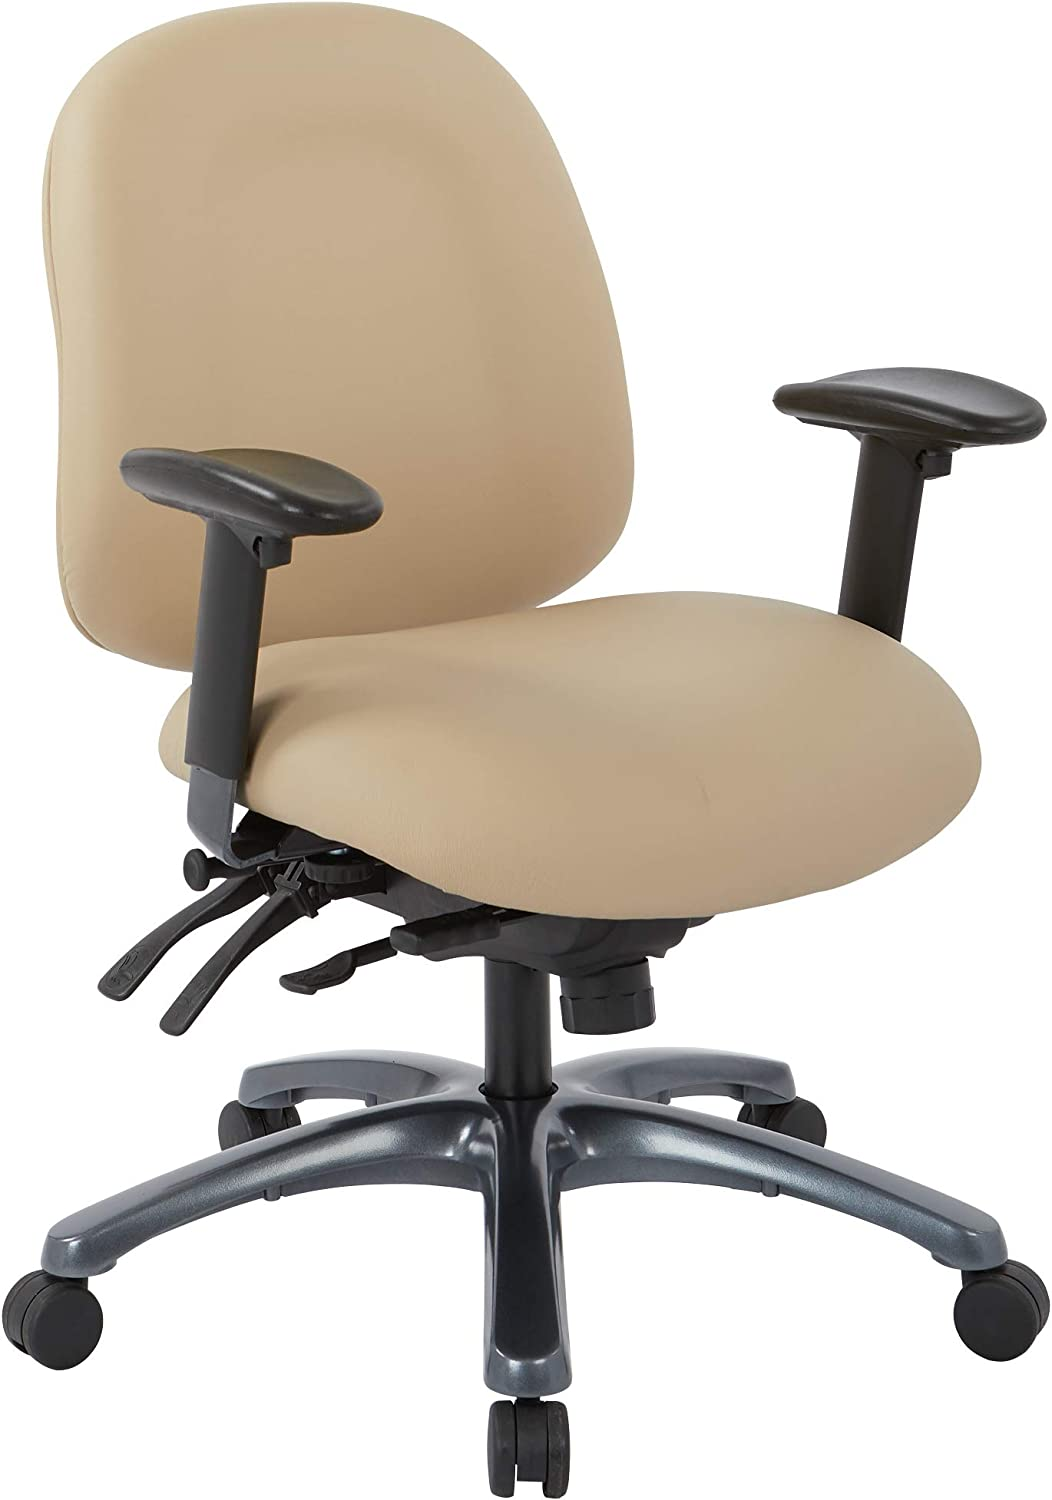 Office Star 8500 Series Multi-Function Mid Back Executive Ergonomic Office Chair with Seat Slider and Titanium Finish Base, Dillon Buff Fabric